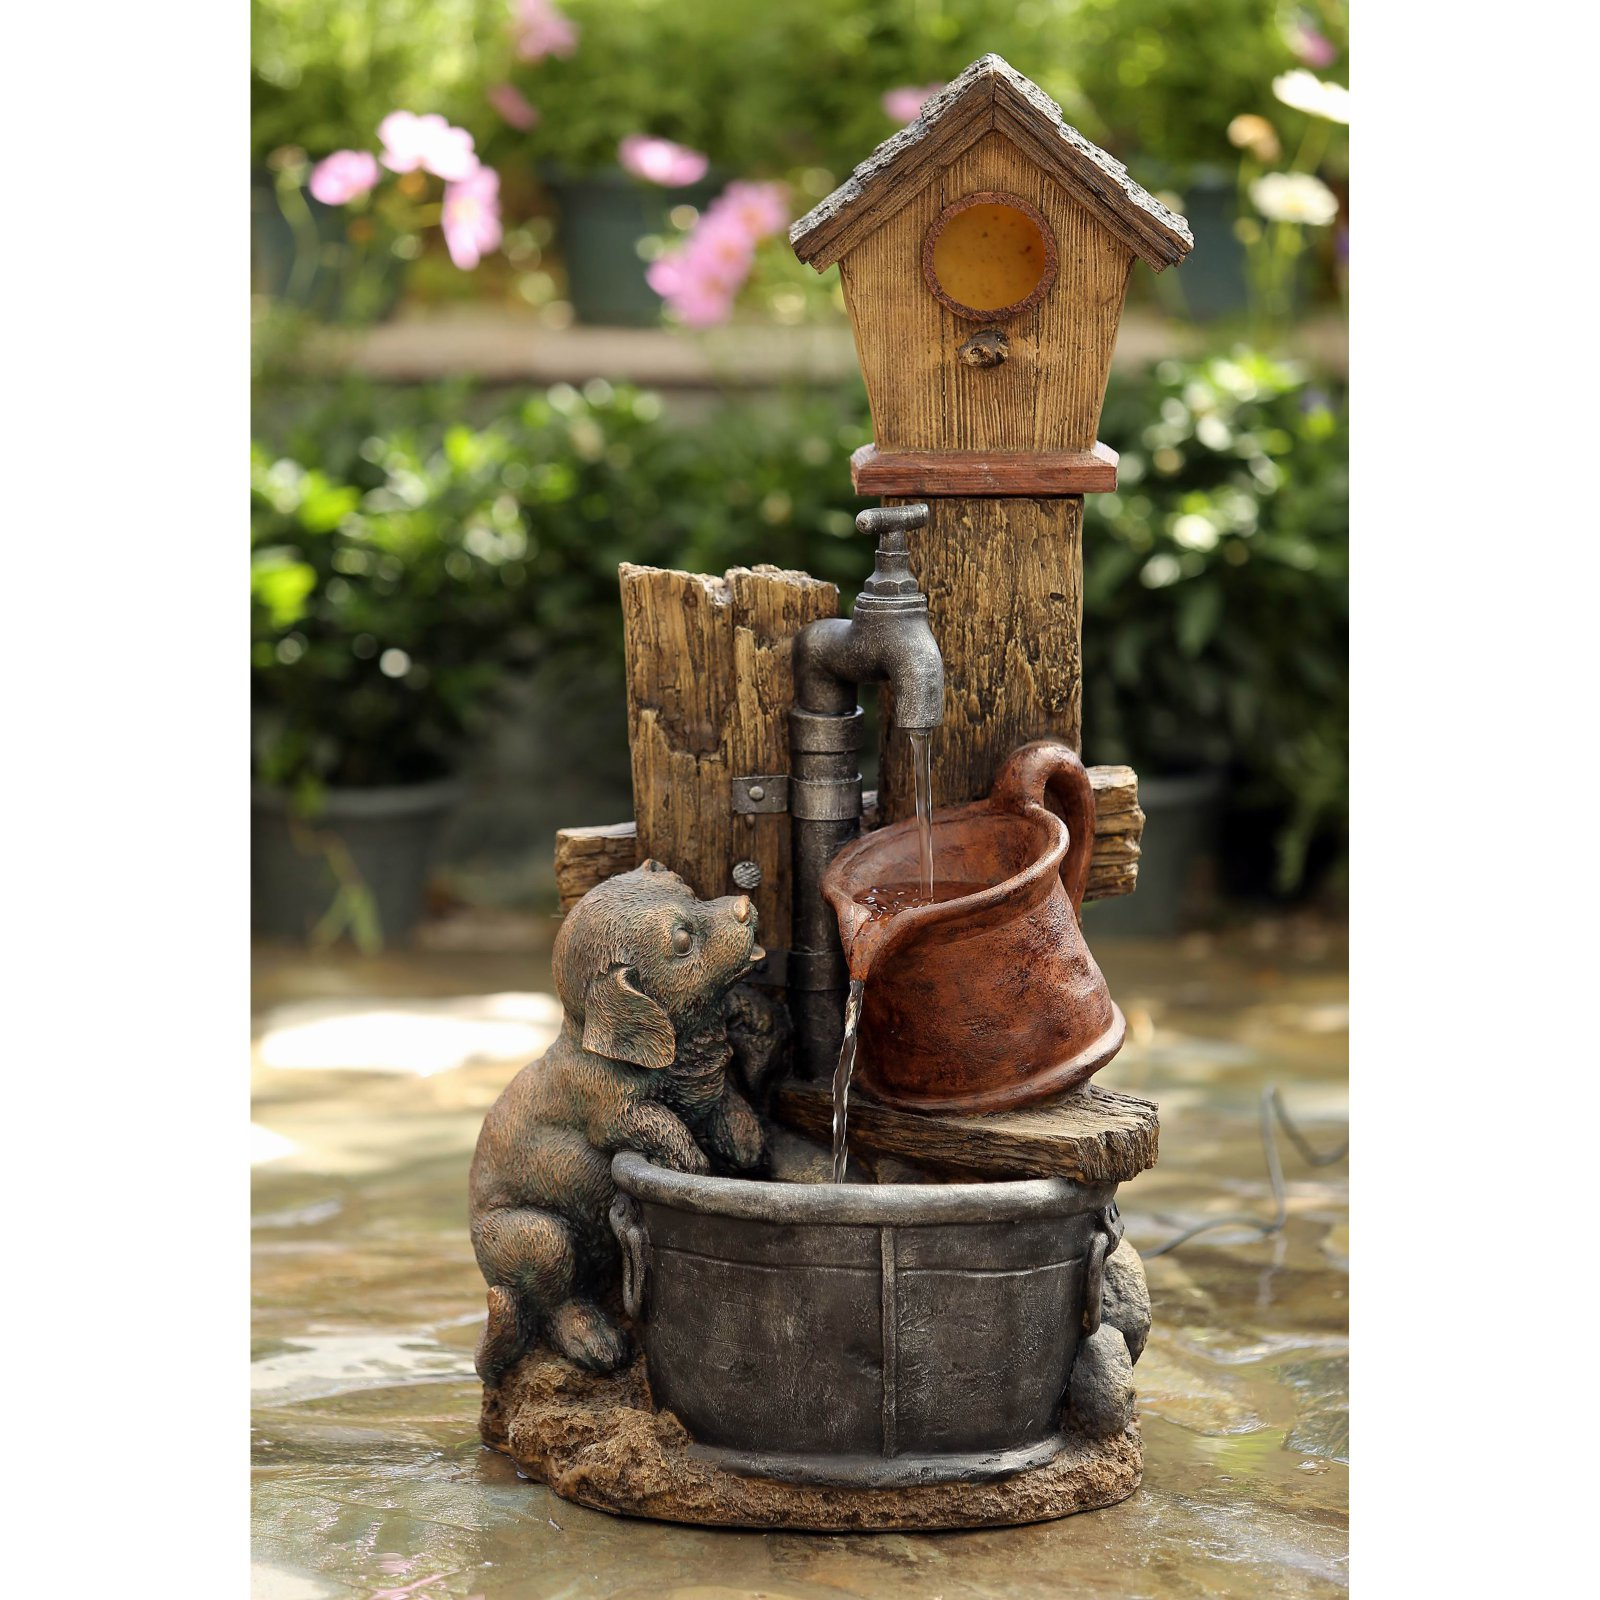 Jeco Birdhouse and Dog Indoor Outdoor Fountain by Bird Houses